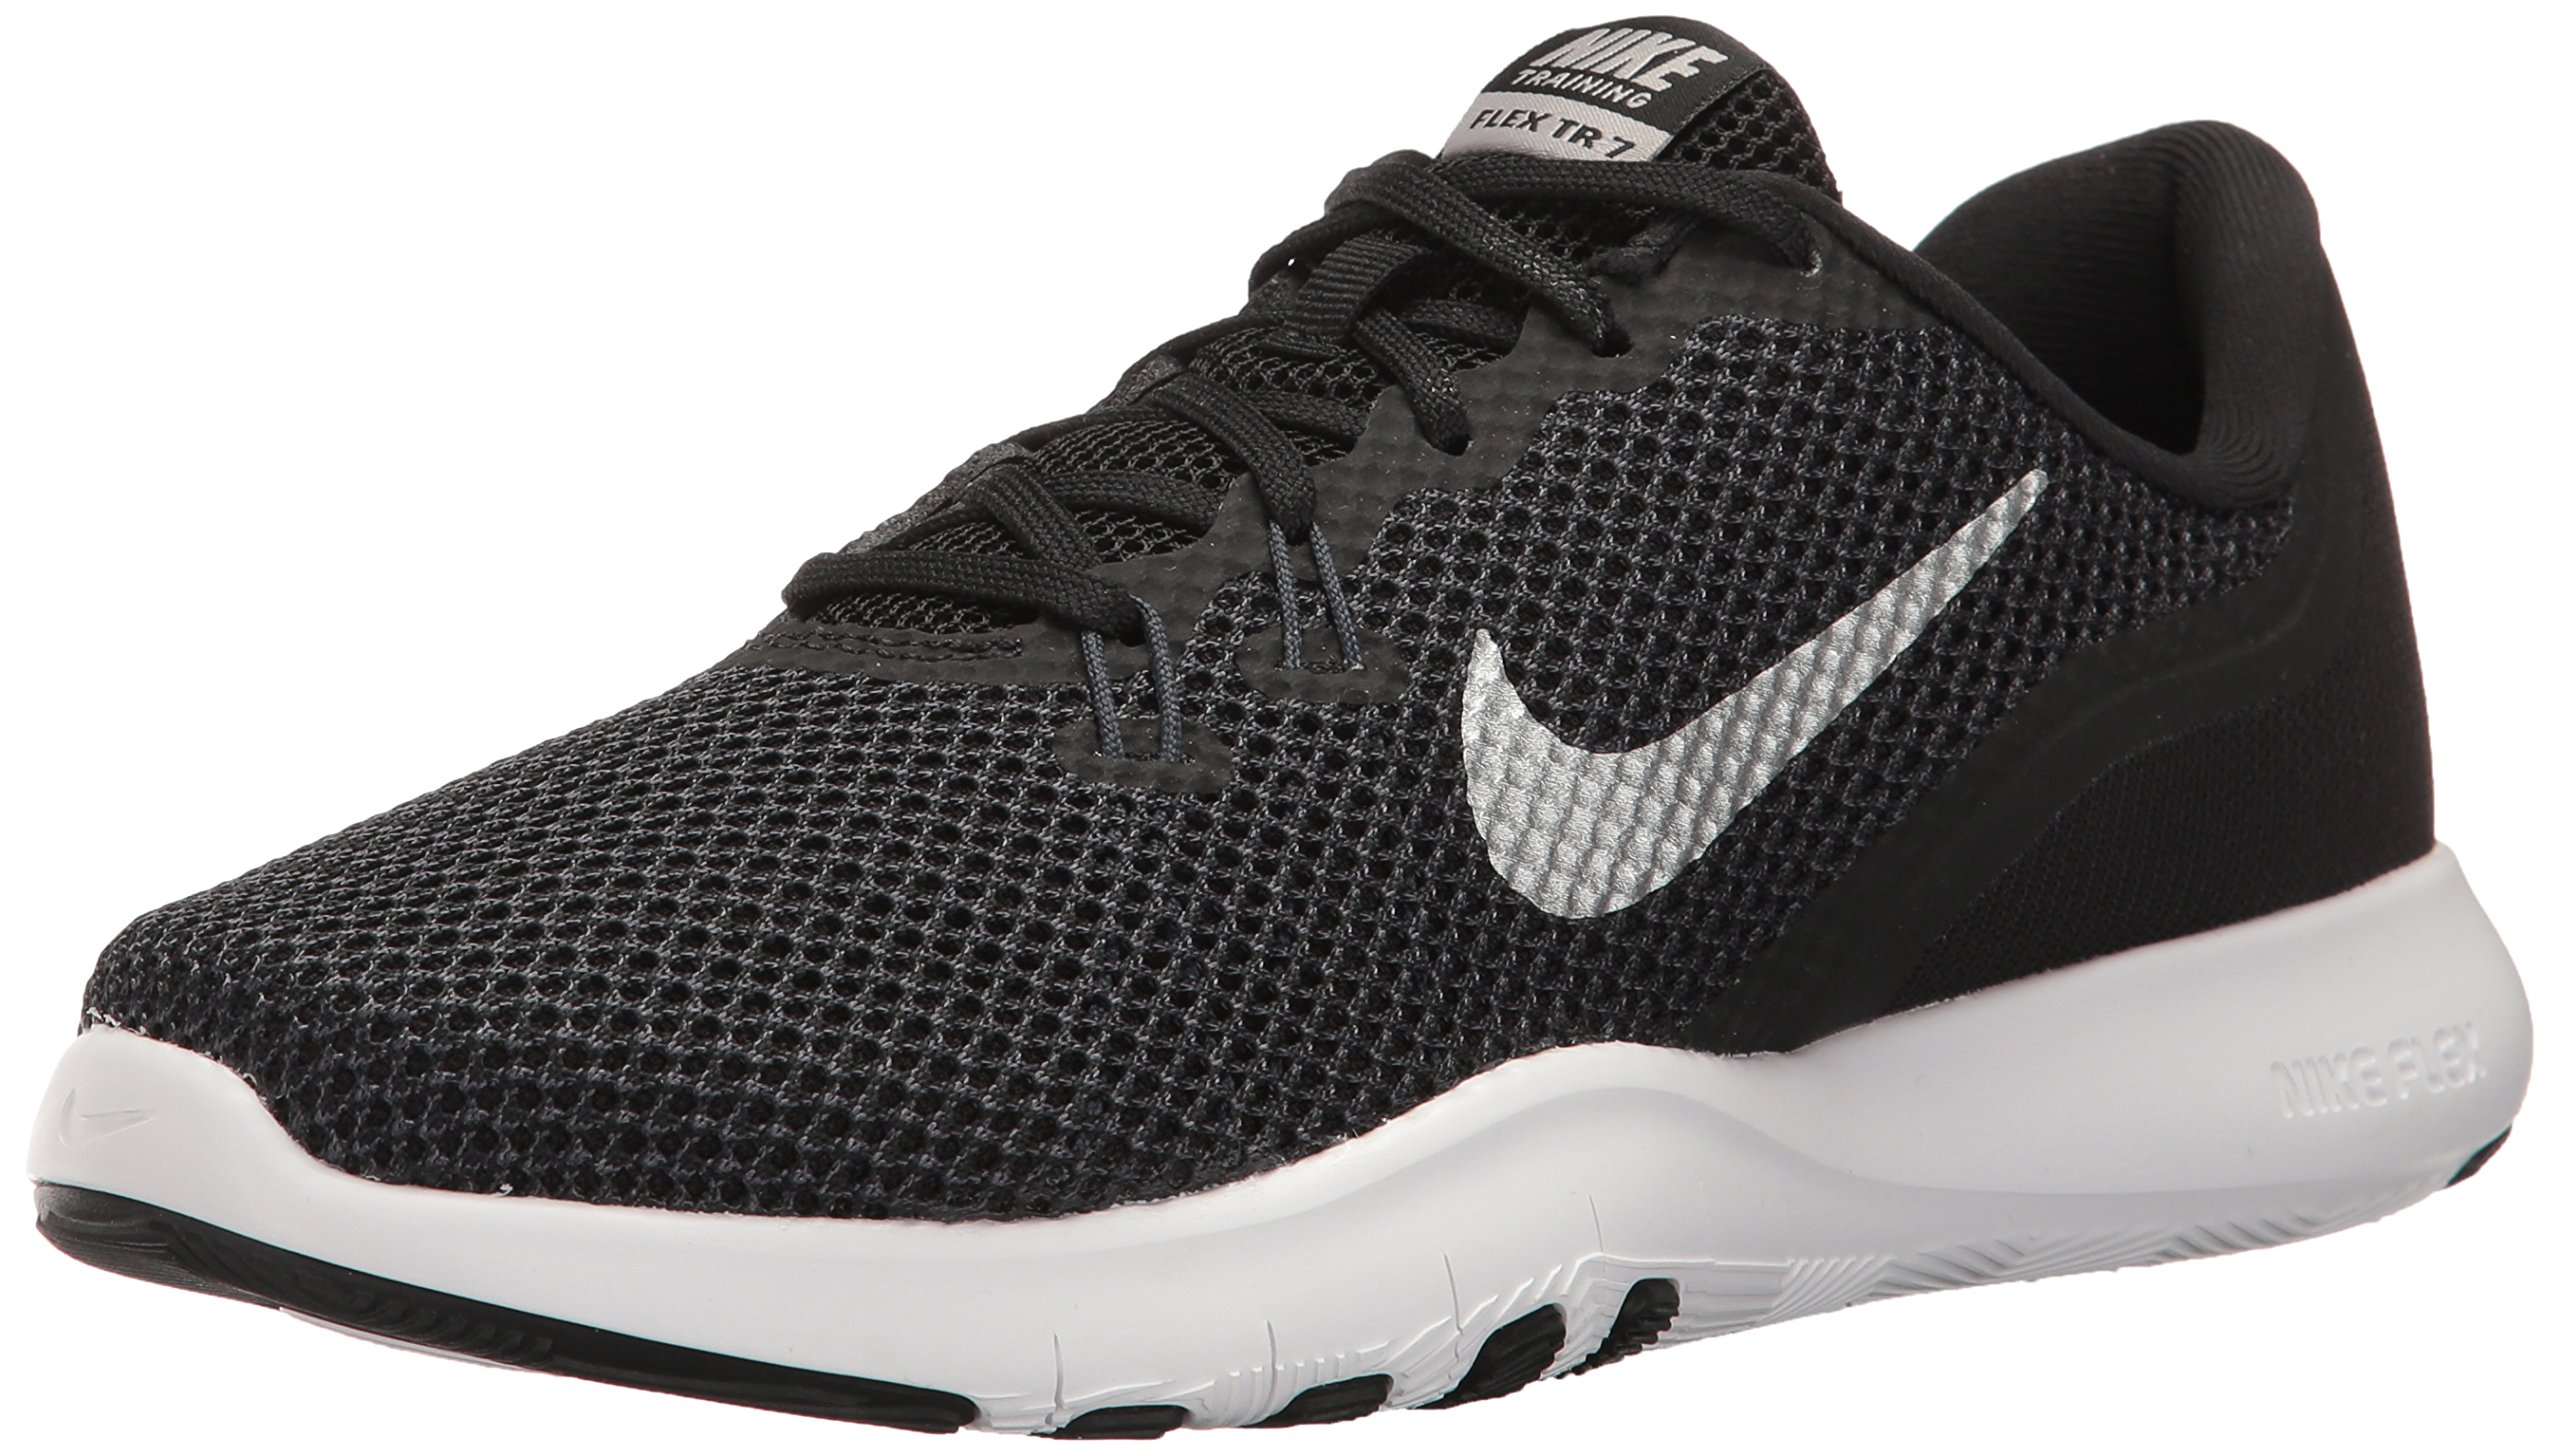 Nike Women's Flex Trainer 7 Running Shoe, Black/Metallic Silver - Anthracite - White, 7.5 Wide US by Nike